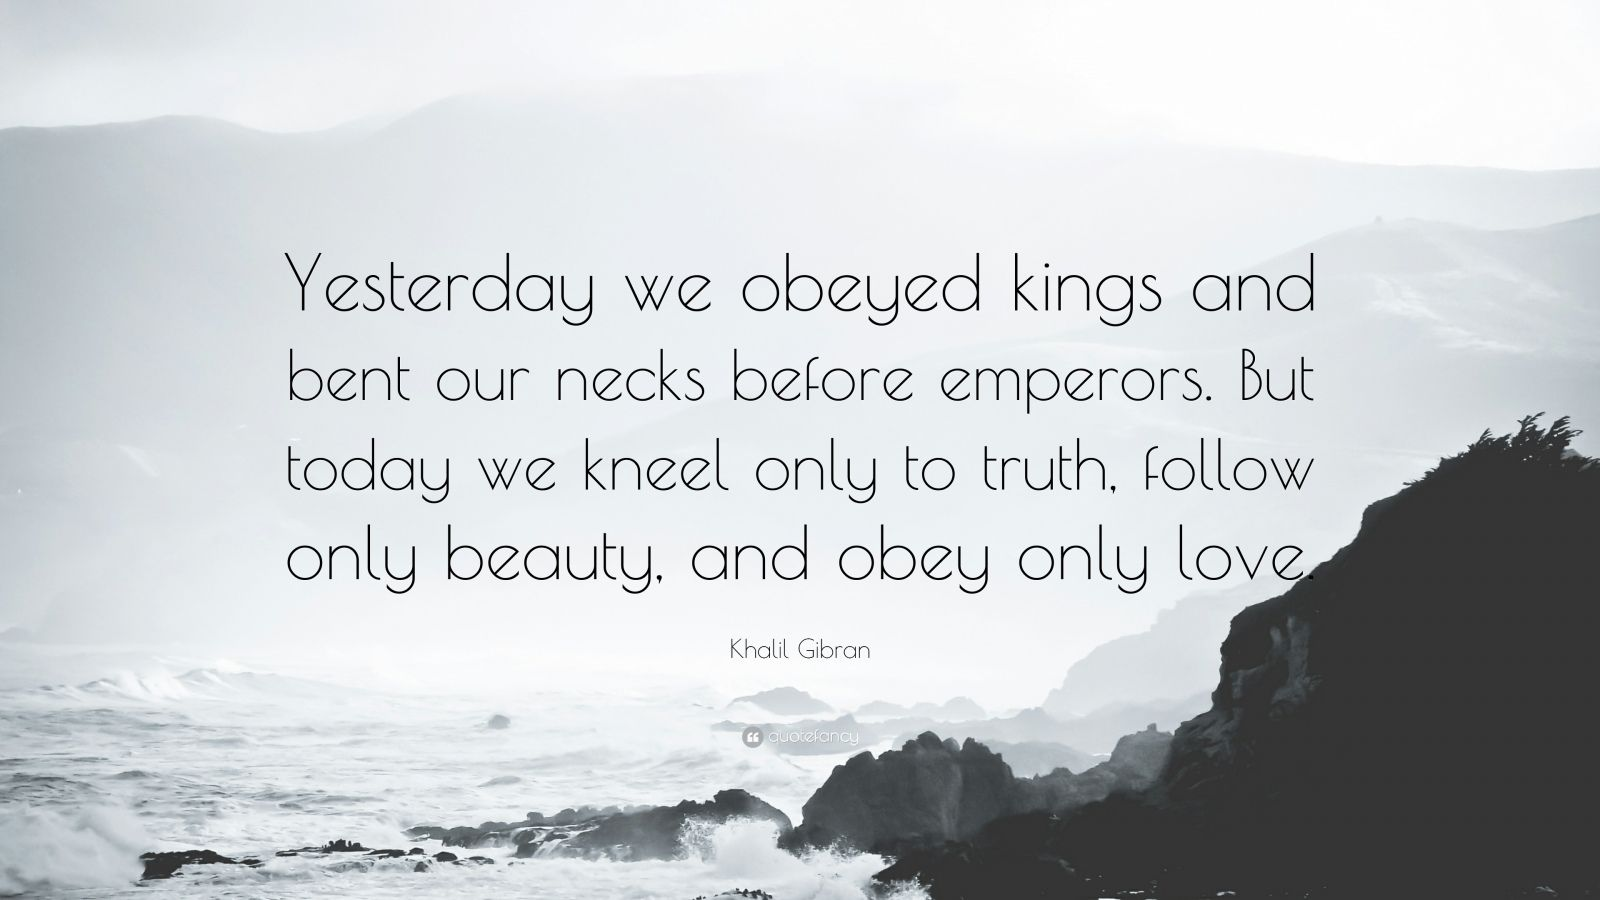 """Khalil Gibran Quote: """"Yesterday we obeyed kings and bent our necks before emperors. But today we kneel only to truth, follow only beauty, and obey only love."""""""